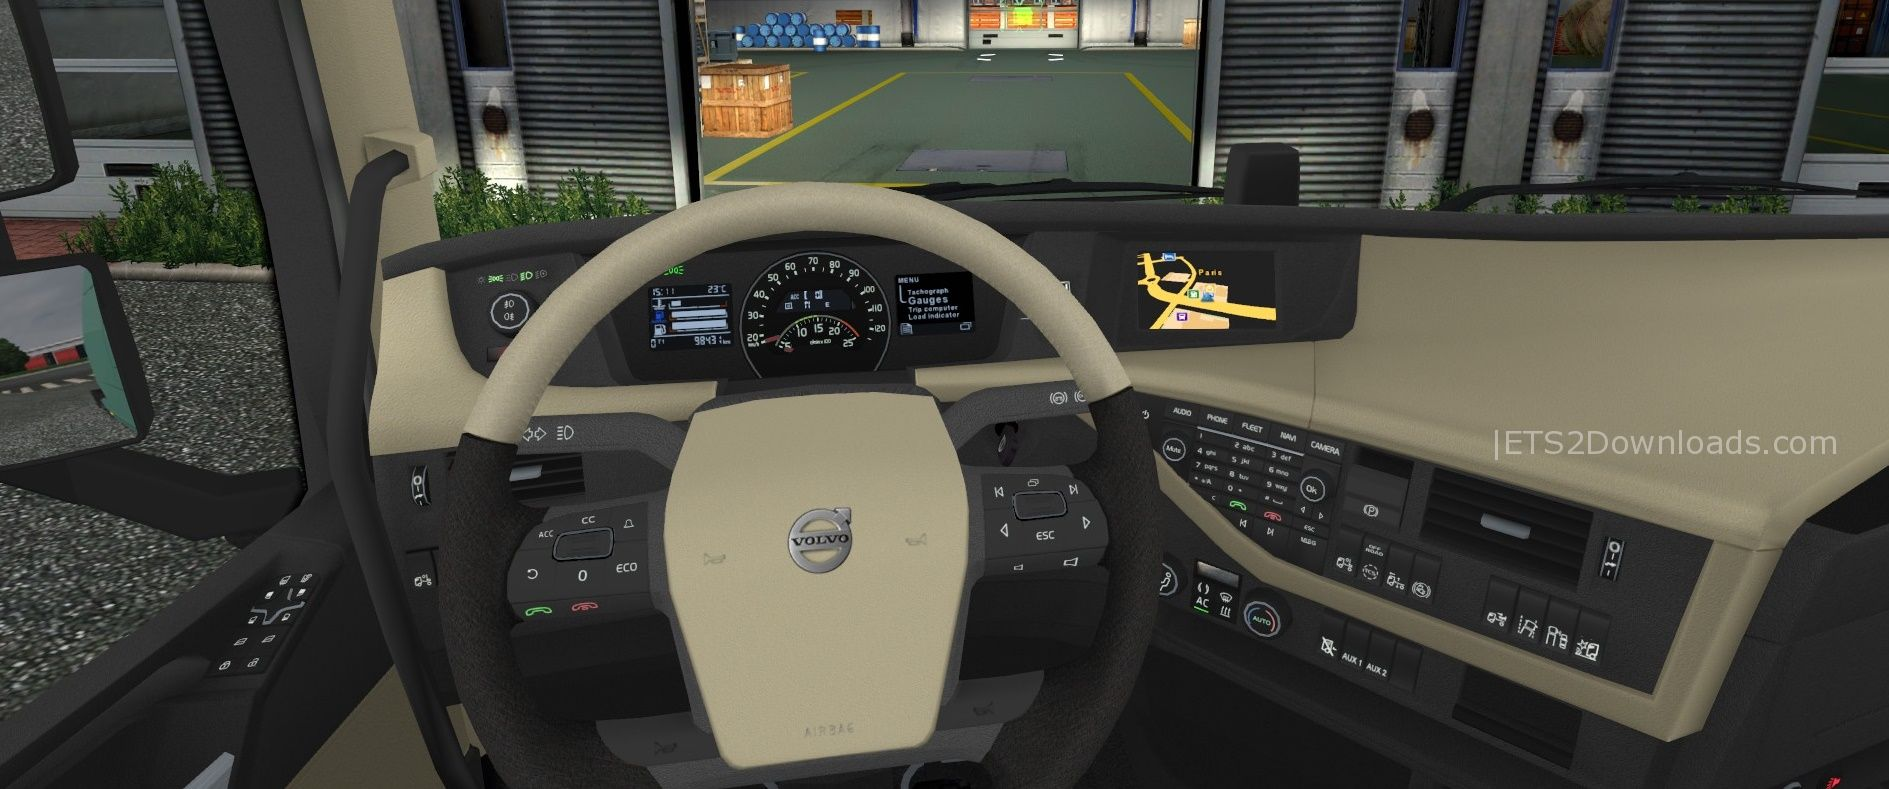 new-dashboard-for-volvo-fh